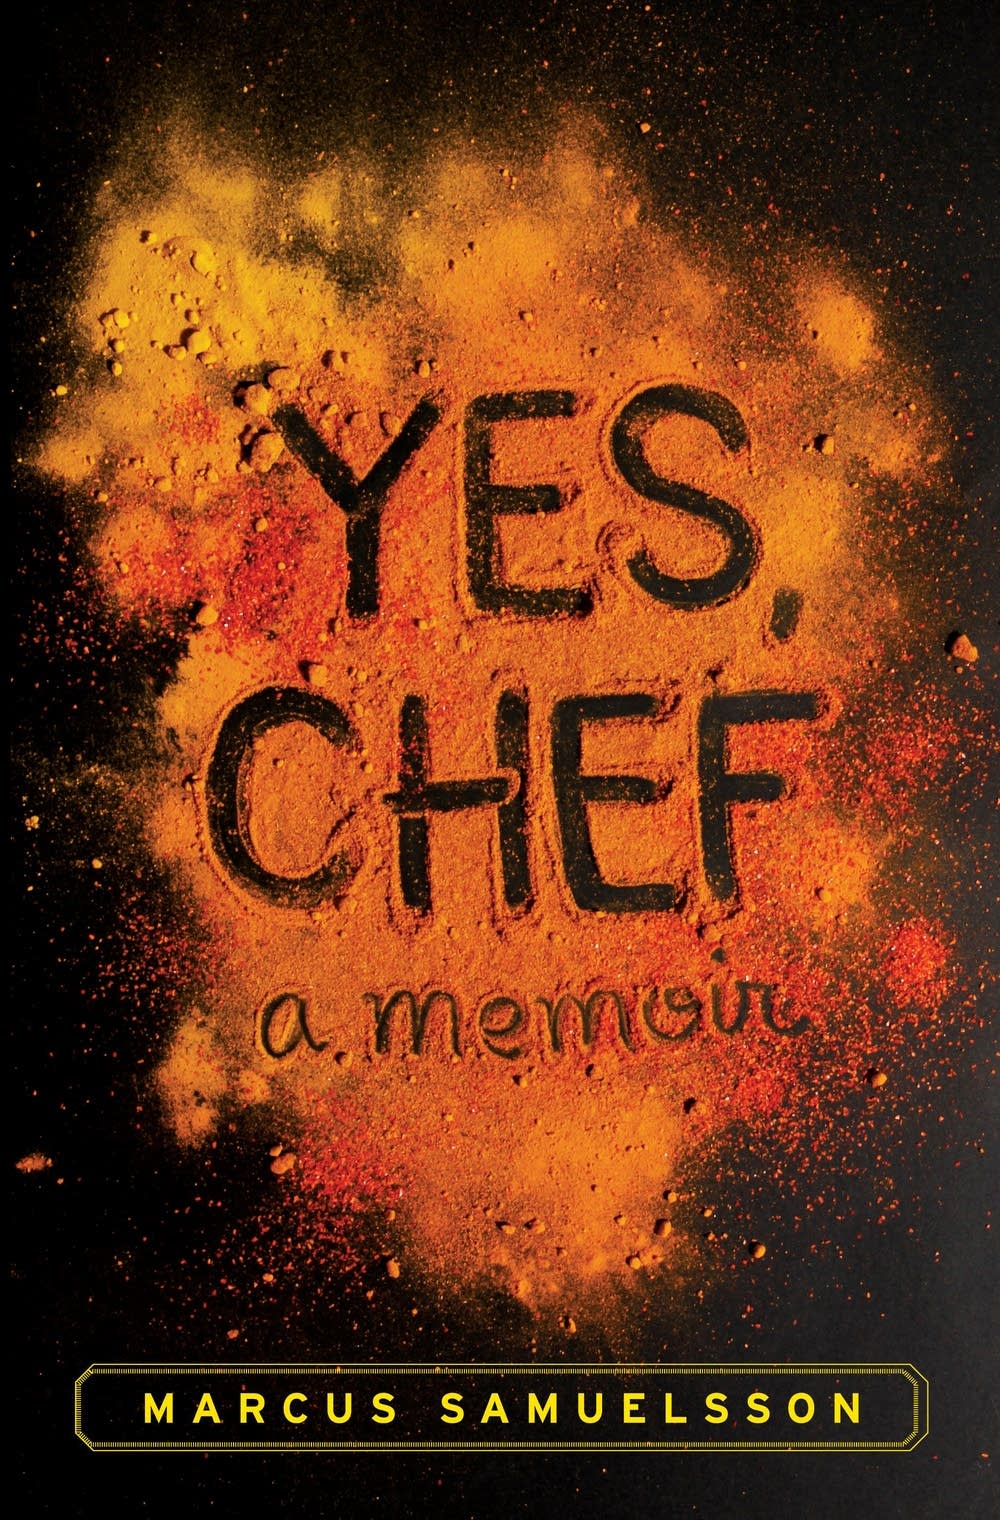 'Yes, Chef' by Marcus Samuelsson